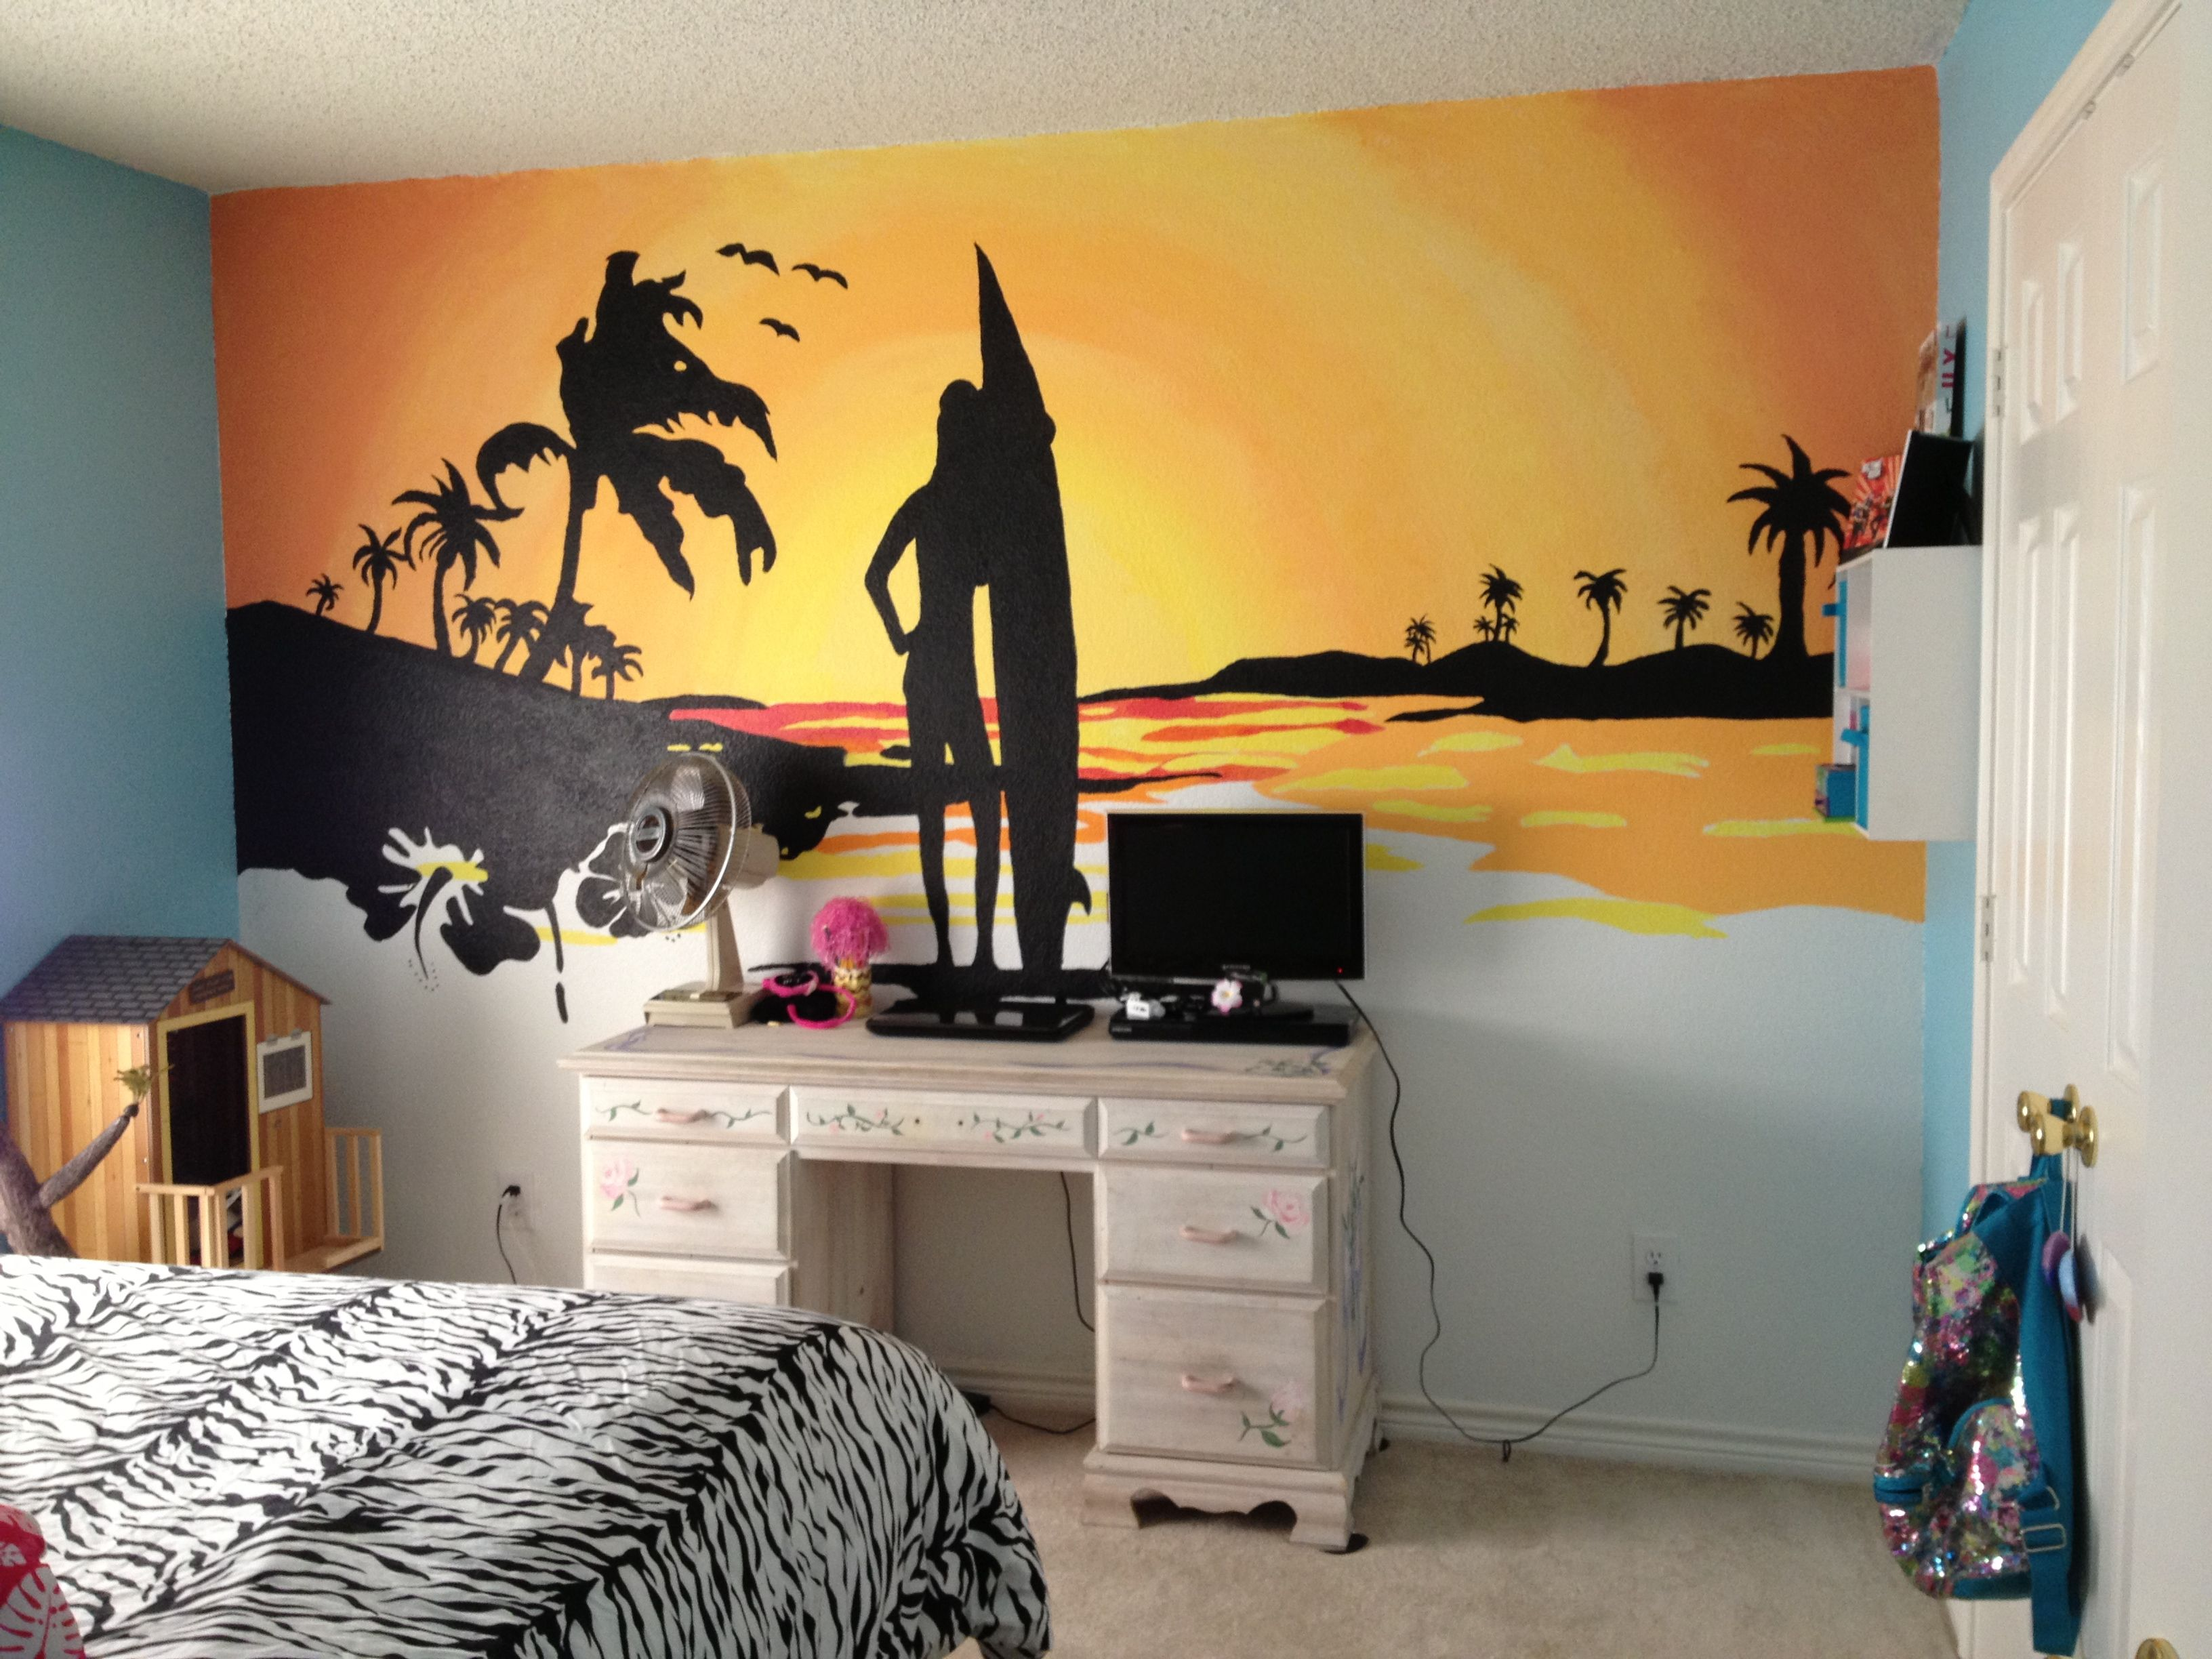 Awesome Beach Sunset Mural My Husband And I Painted For My 10 Year Old Daughter  With Acrylic Paints From Michaelu0027s. The Black Paint Is Valspar Signature  Paint From ... Part 32